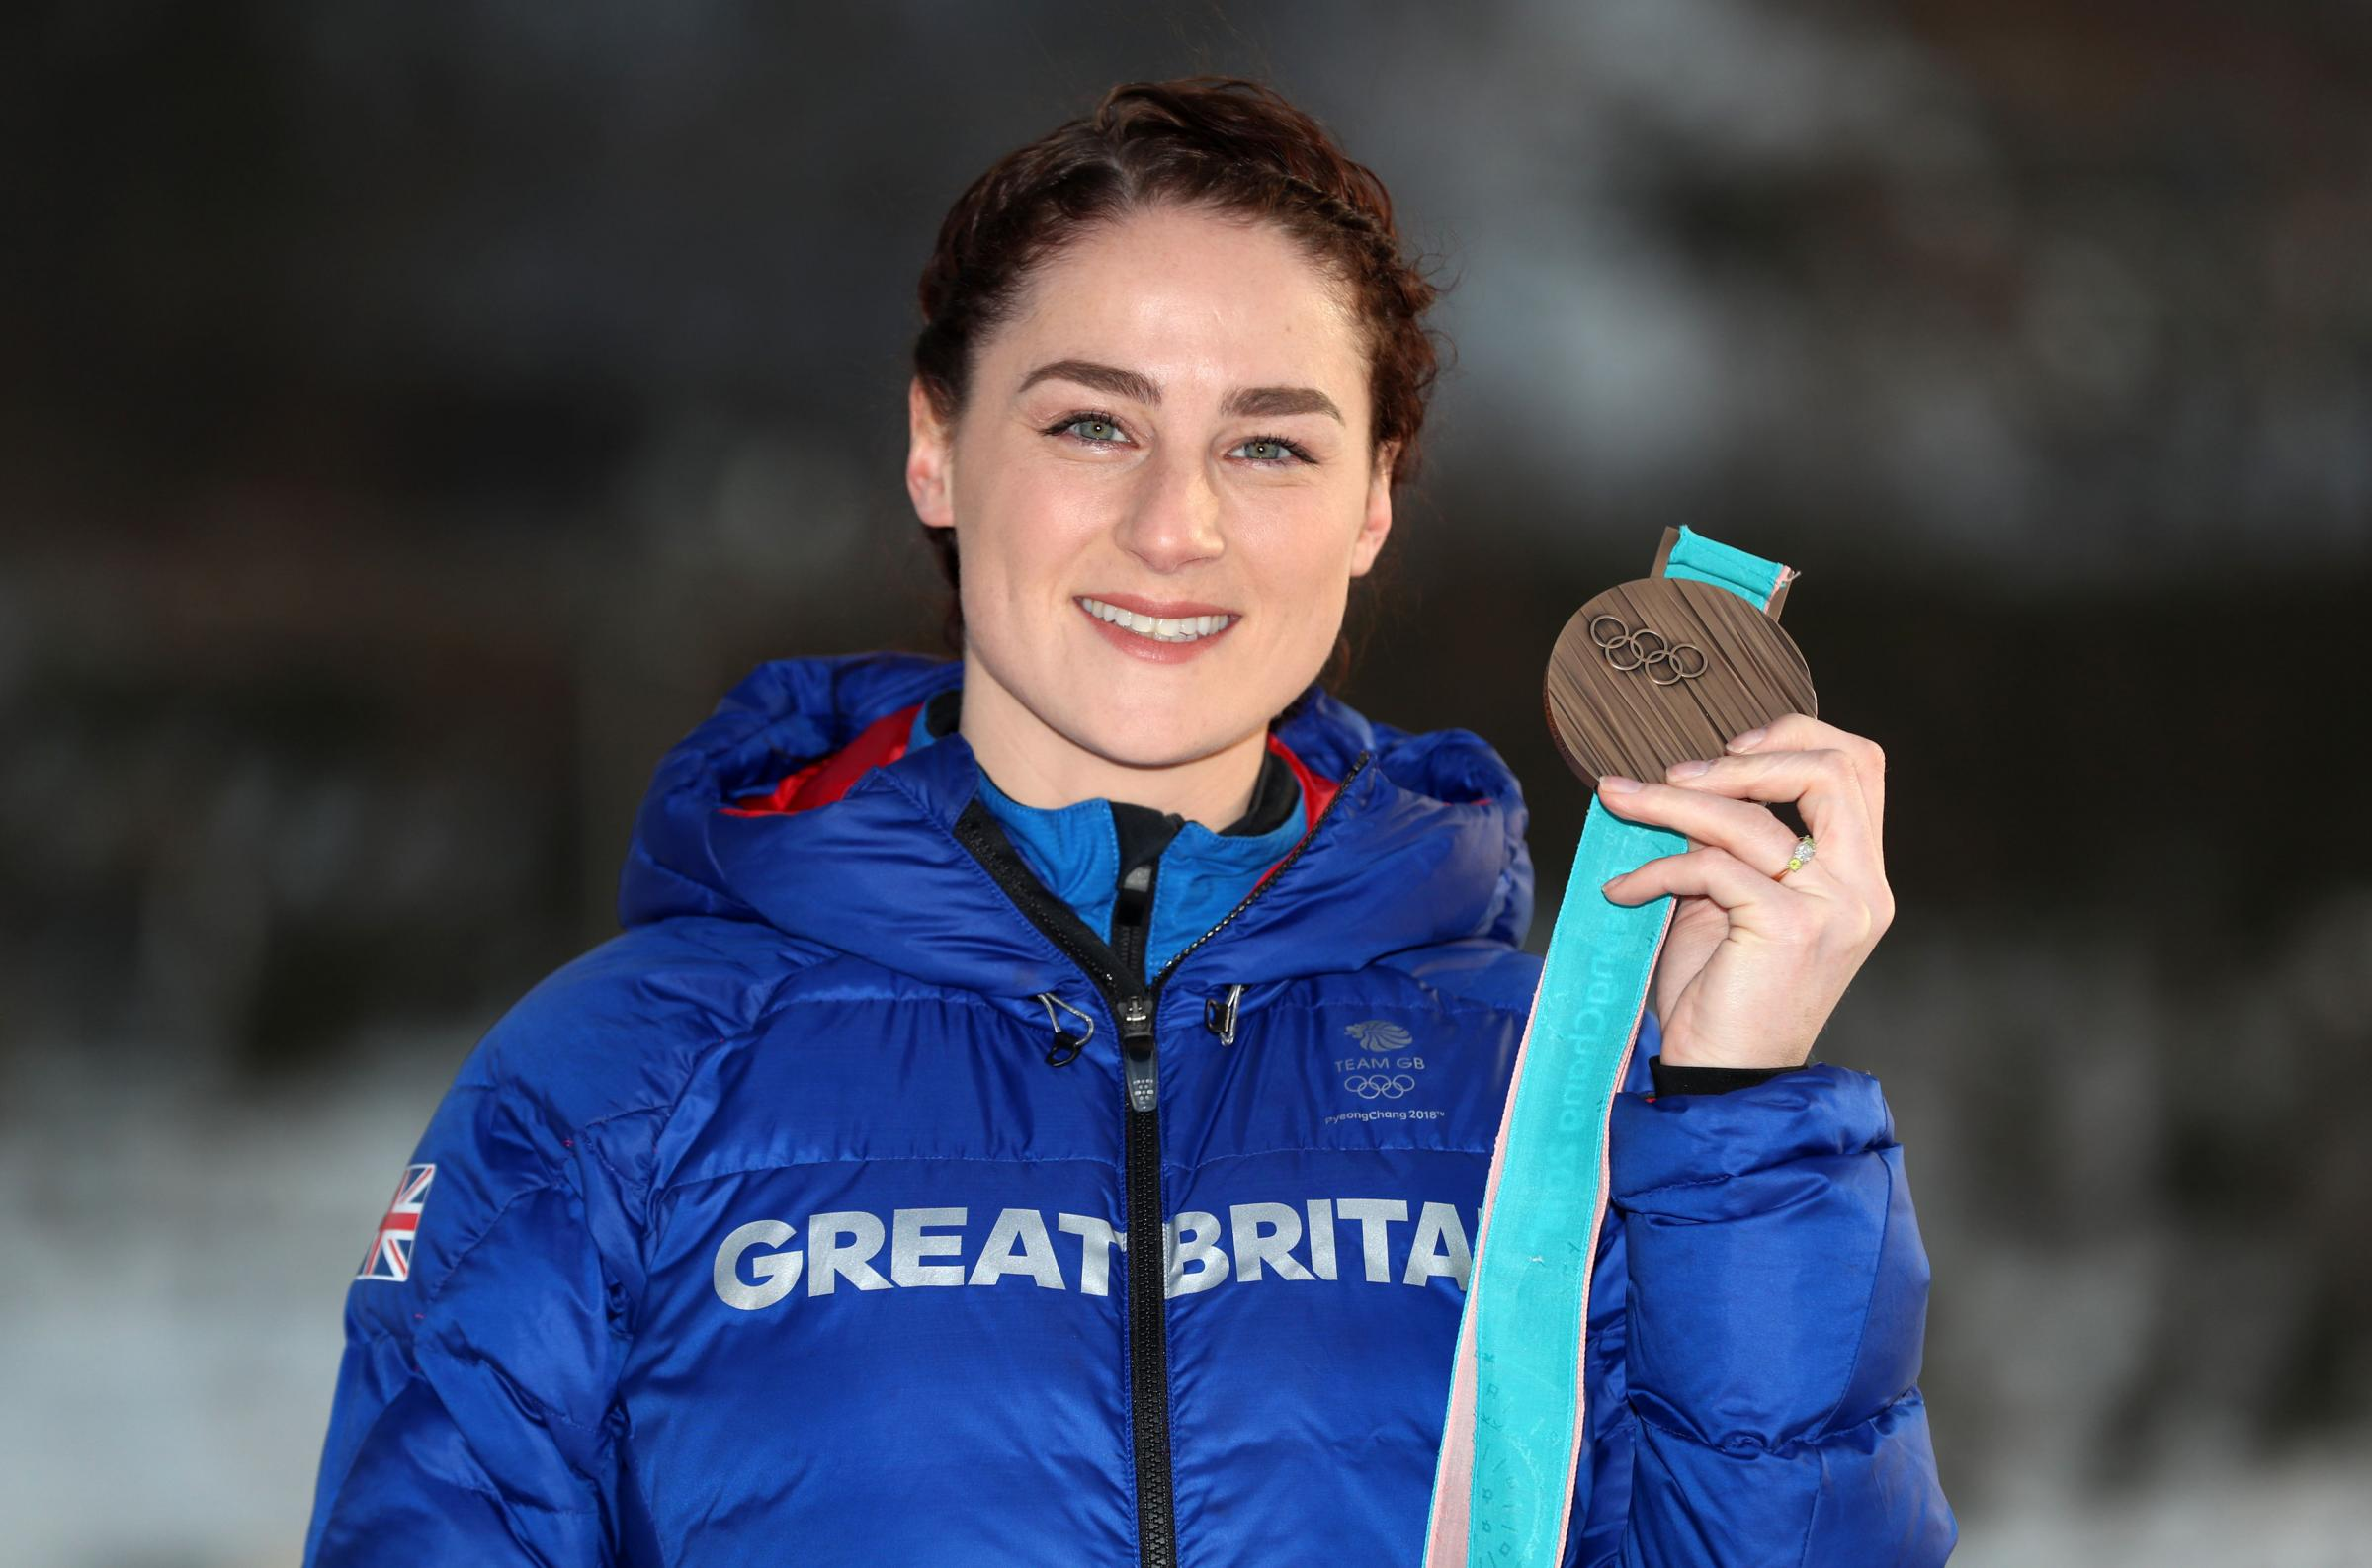 Great Britain's Laura Deas with her Bronze medal, during a photocall at the MPC in Alpensia on day eleven of the PyeongChang 2018 Winter Olympic Games in South Korea. PRESS ASSOCIATION Photo. Picture date: Tuesday February 20, 2018. Great Britainâs L